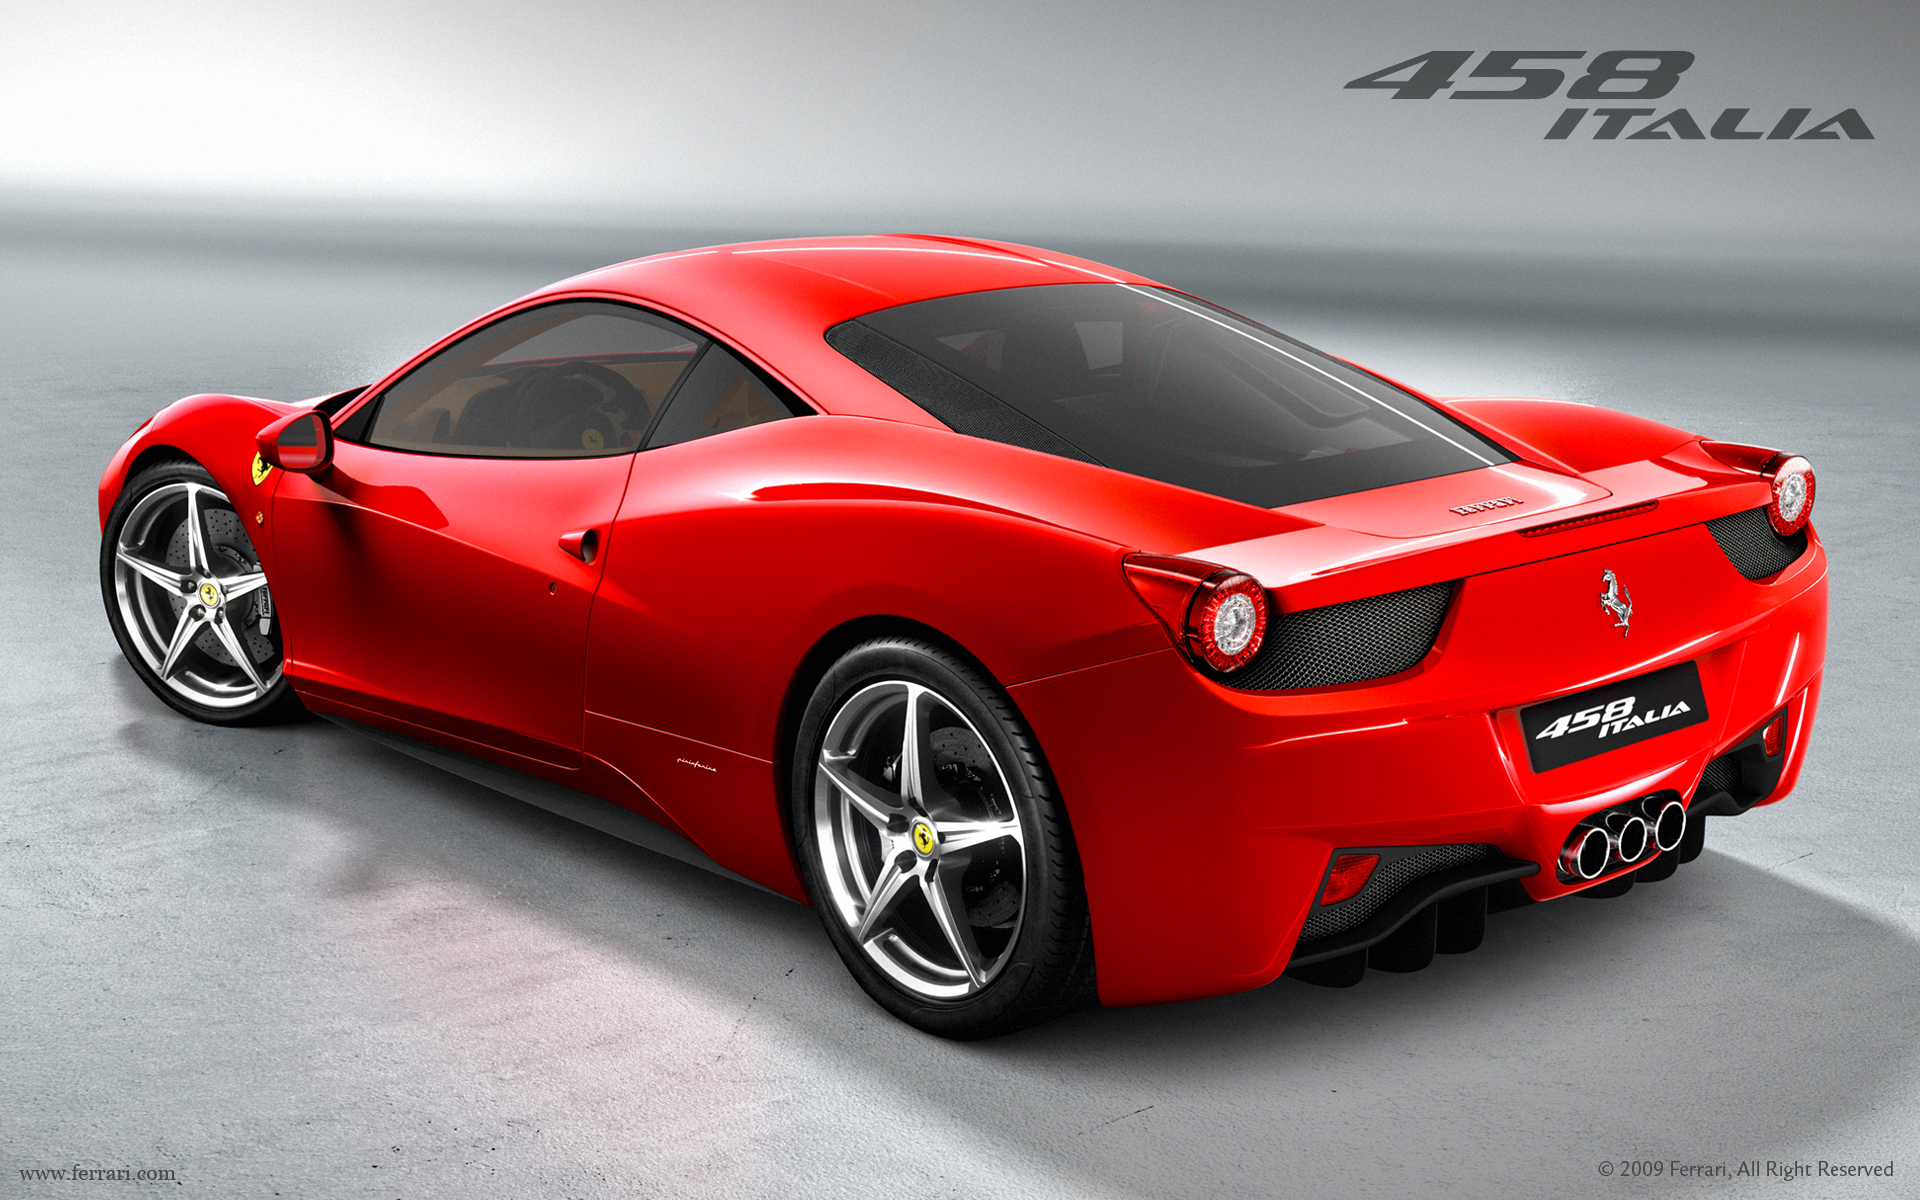 1920x1200 - Ferrari 458 Italia Wallpapers 28